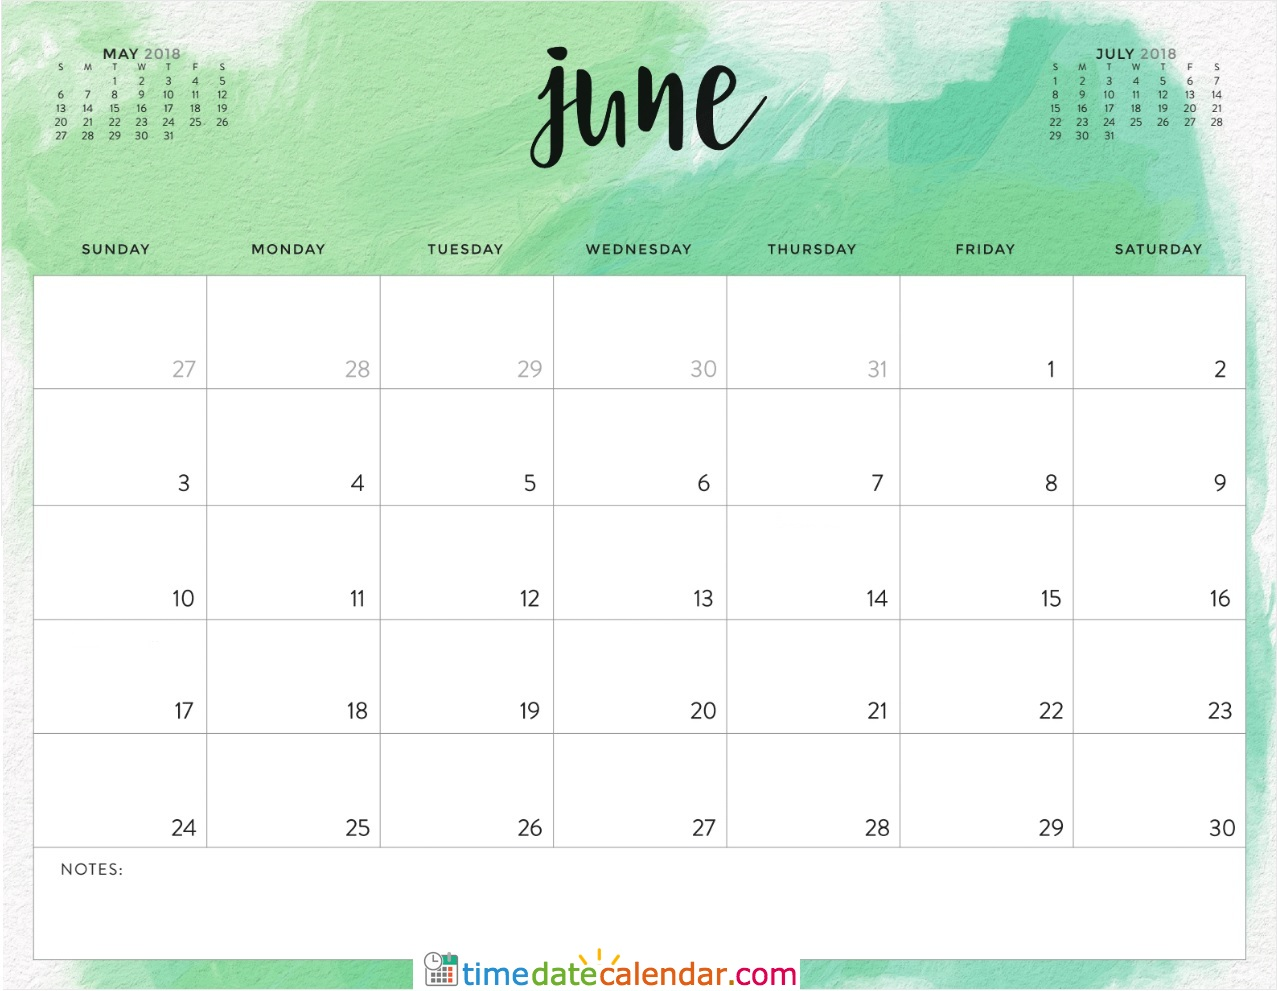 june 2018 calendar canada free printable templates. Black Bedroom Furniture Sets. Home Design Ideas